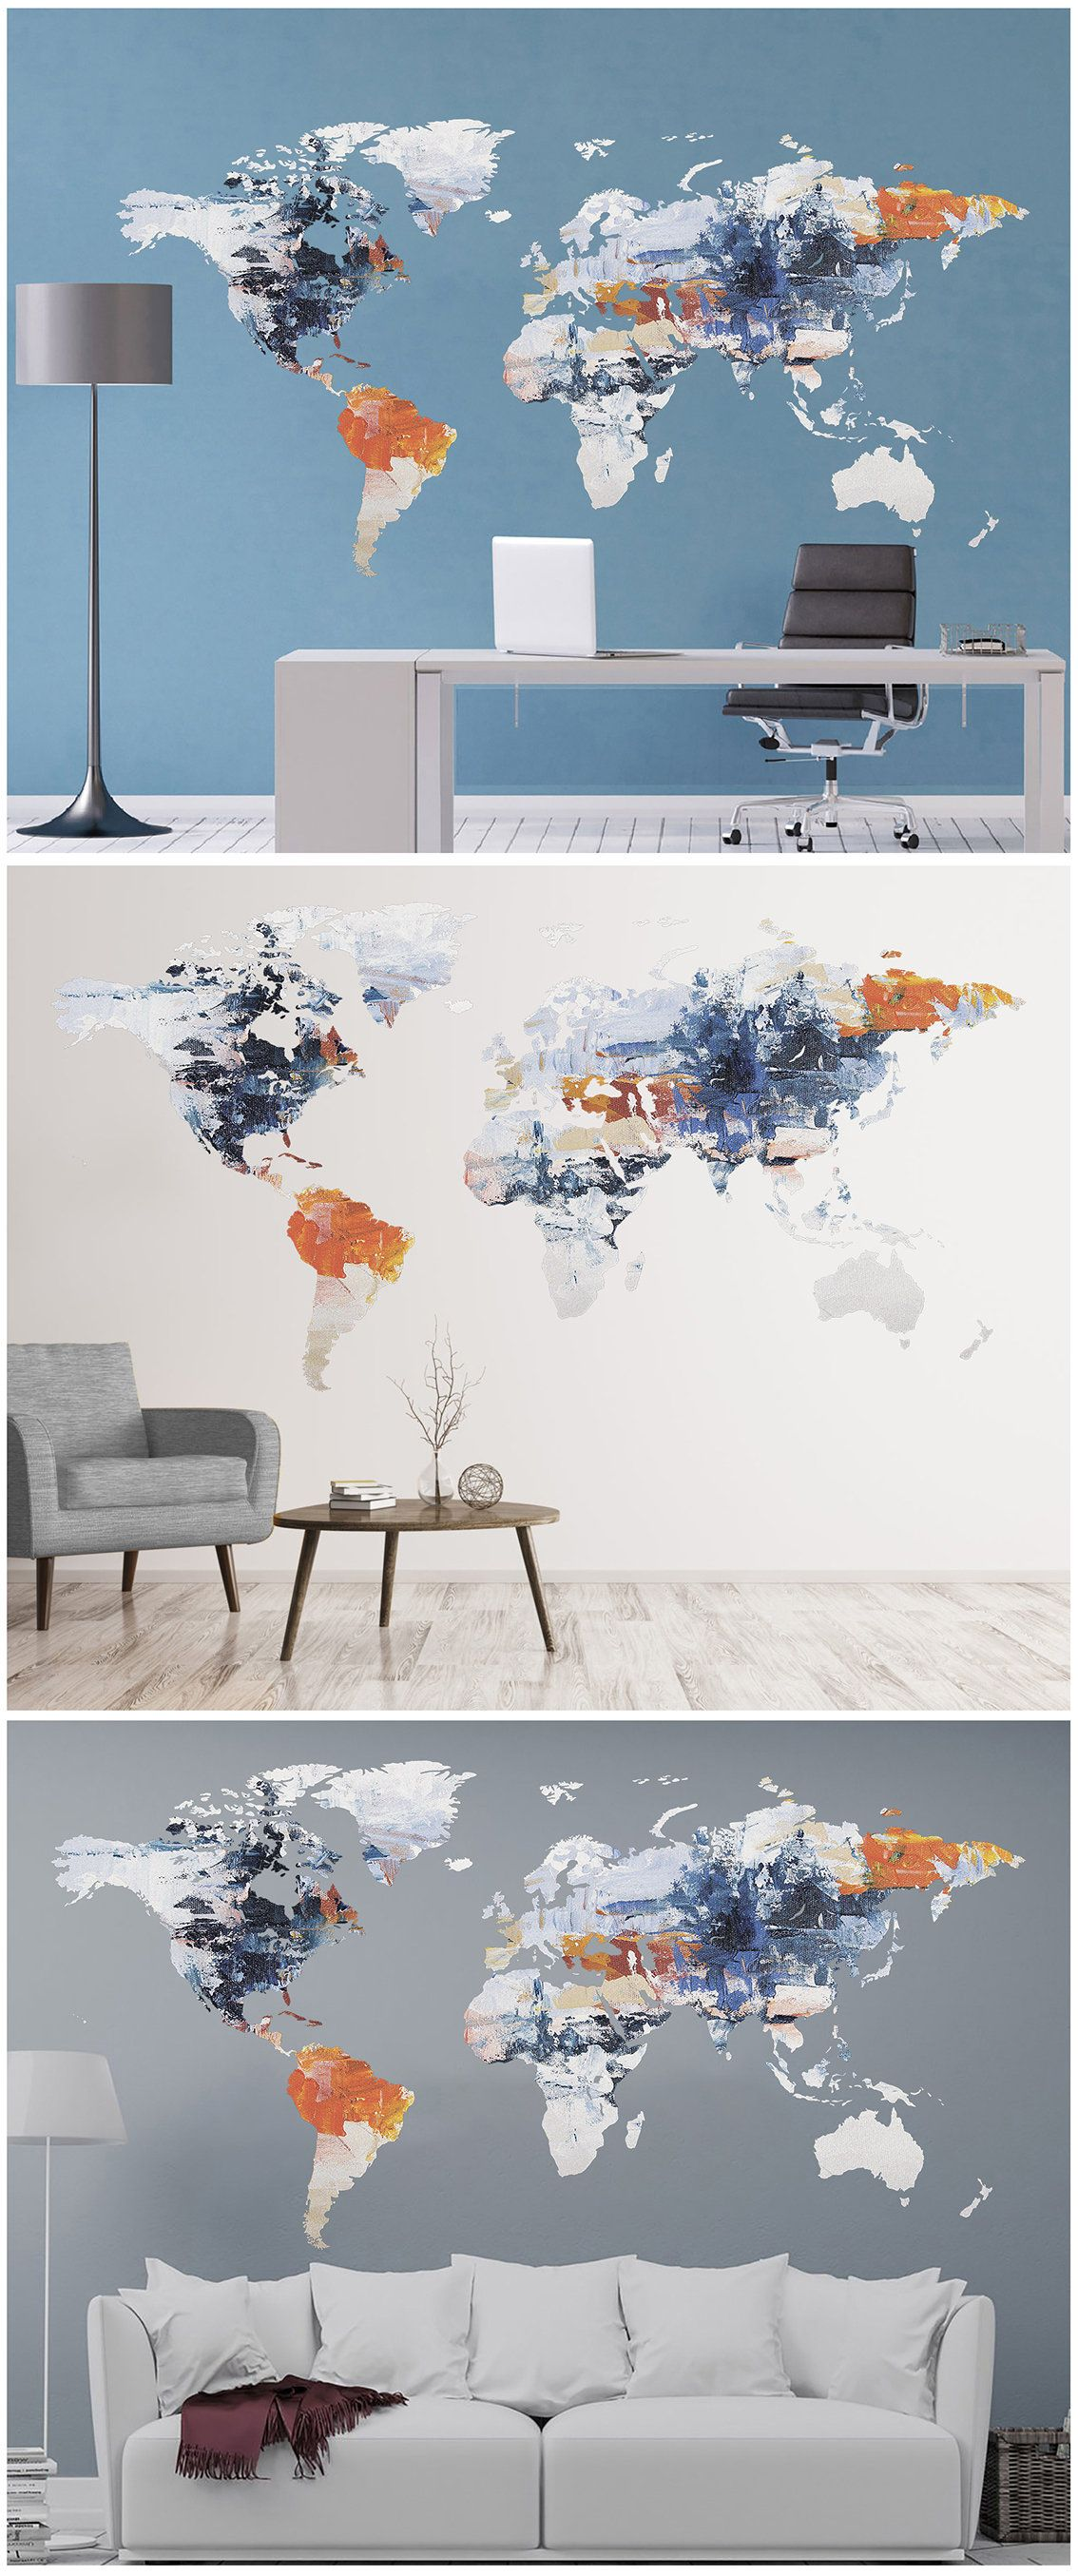 Abstract Wall Art Modern Wall Decor World Map Decal Tender Art Large Abstract Map Push Pin World Map Home Wall Art Vinyl Poster Prints Decal With Images Modern Wall Decor Vinyl